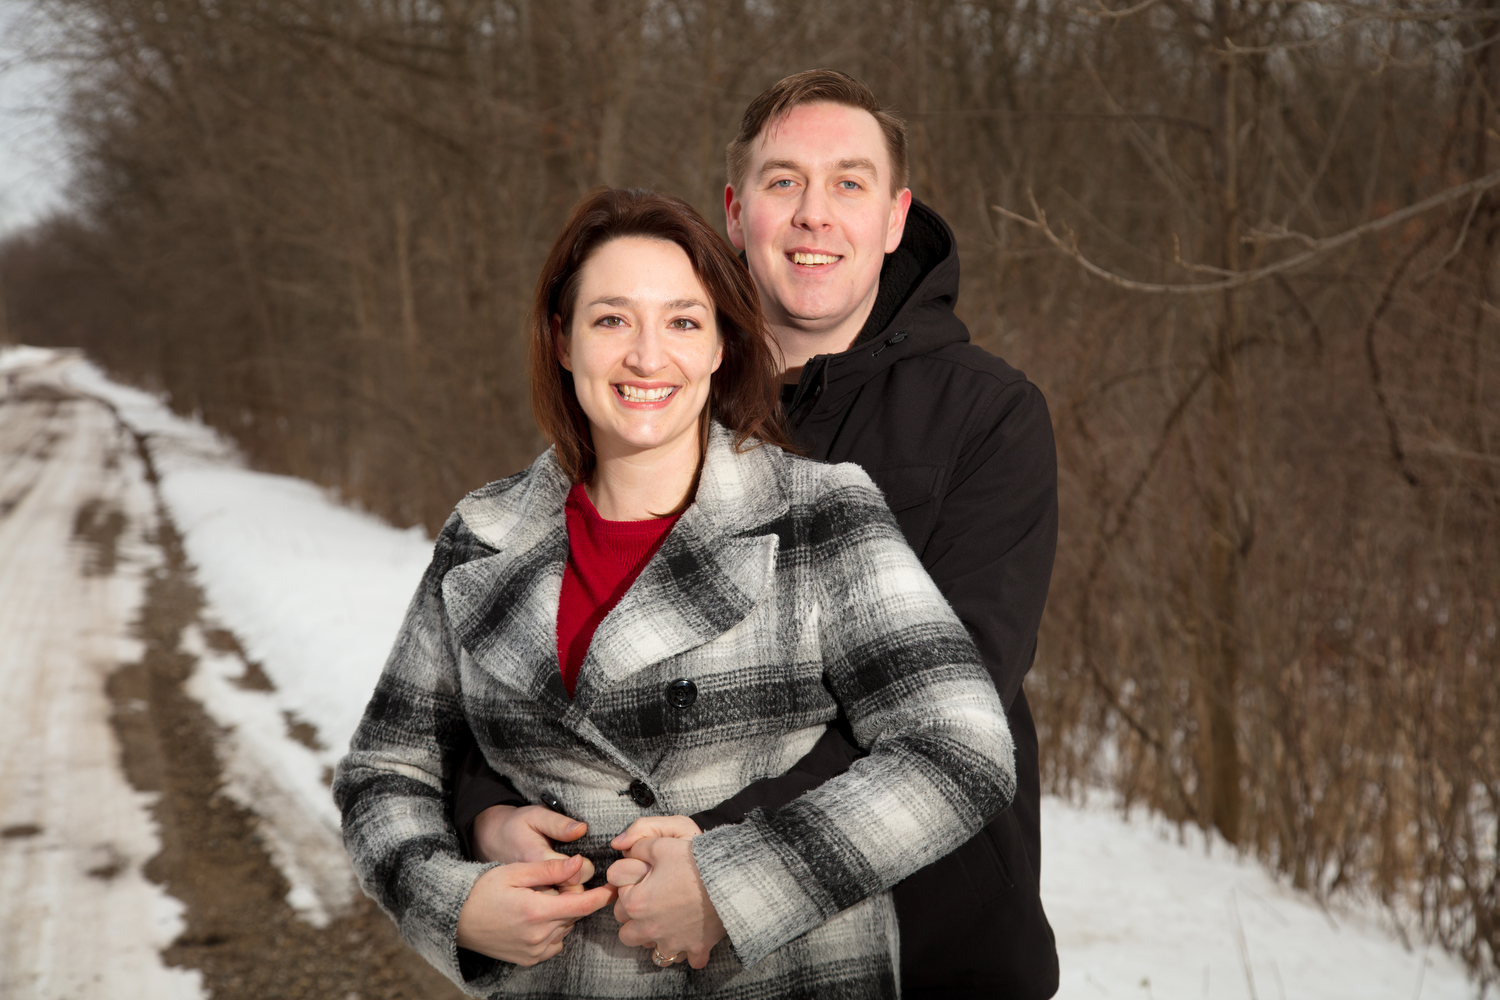 Heather&AndyEngagement-8658.JPG